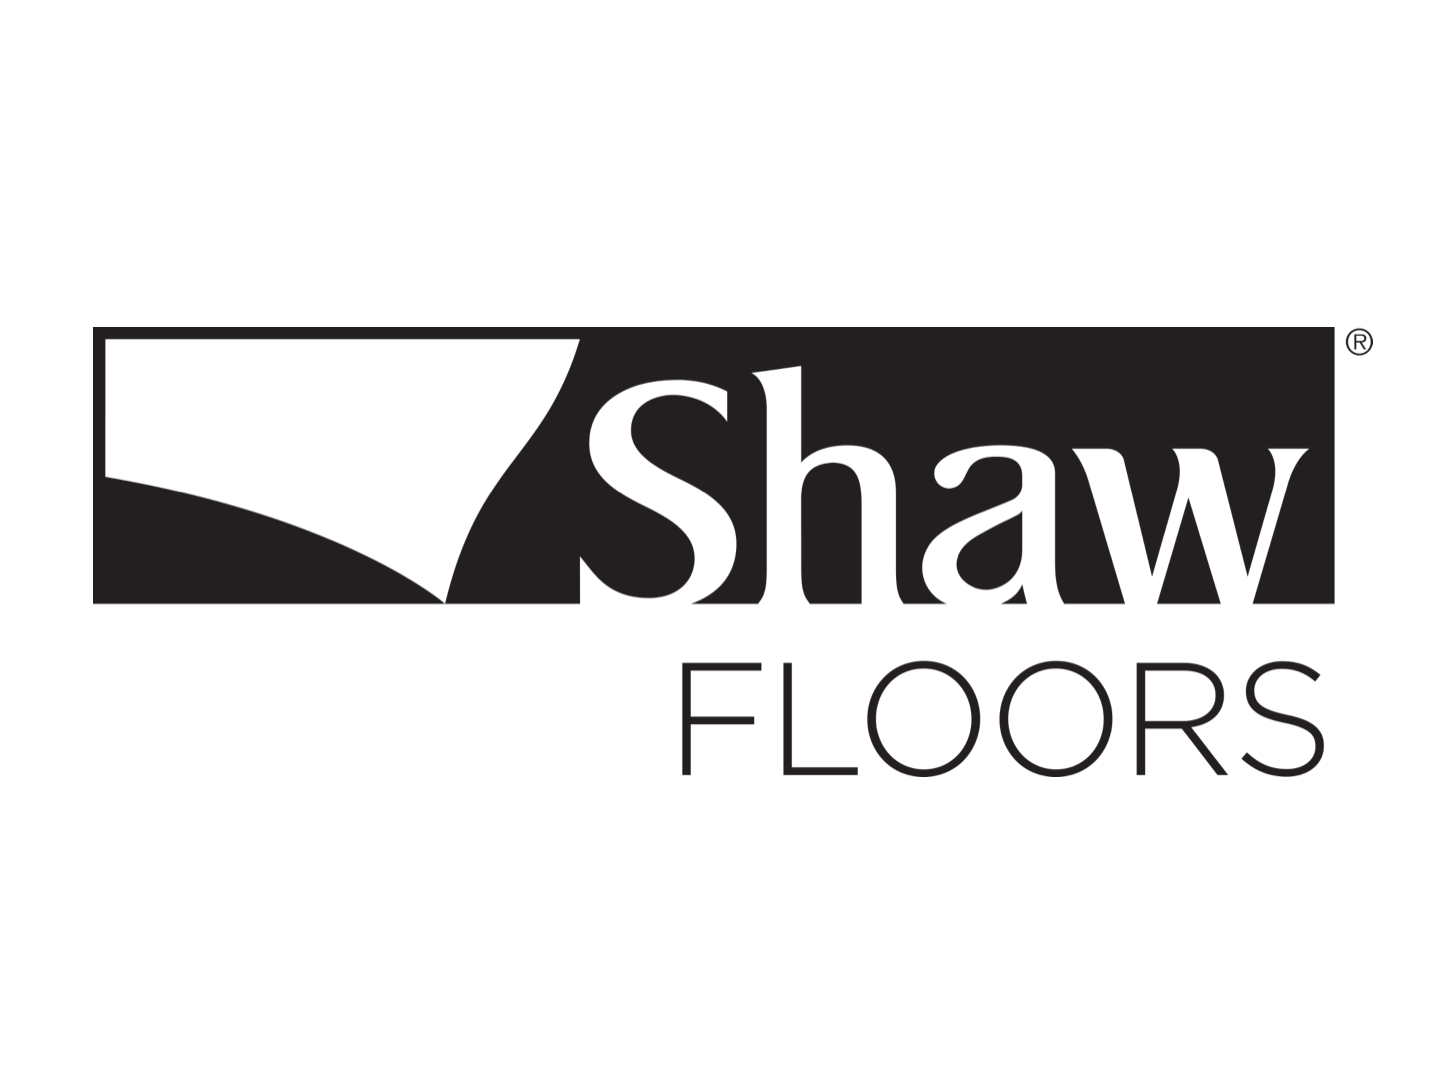 Shaw Floors 2019.png